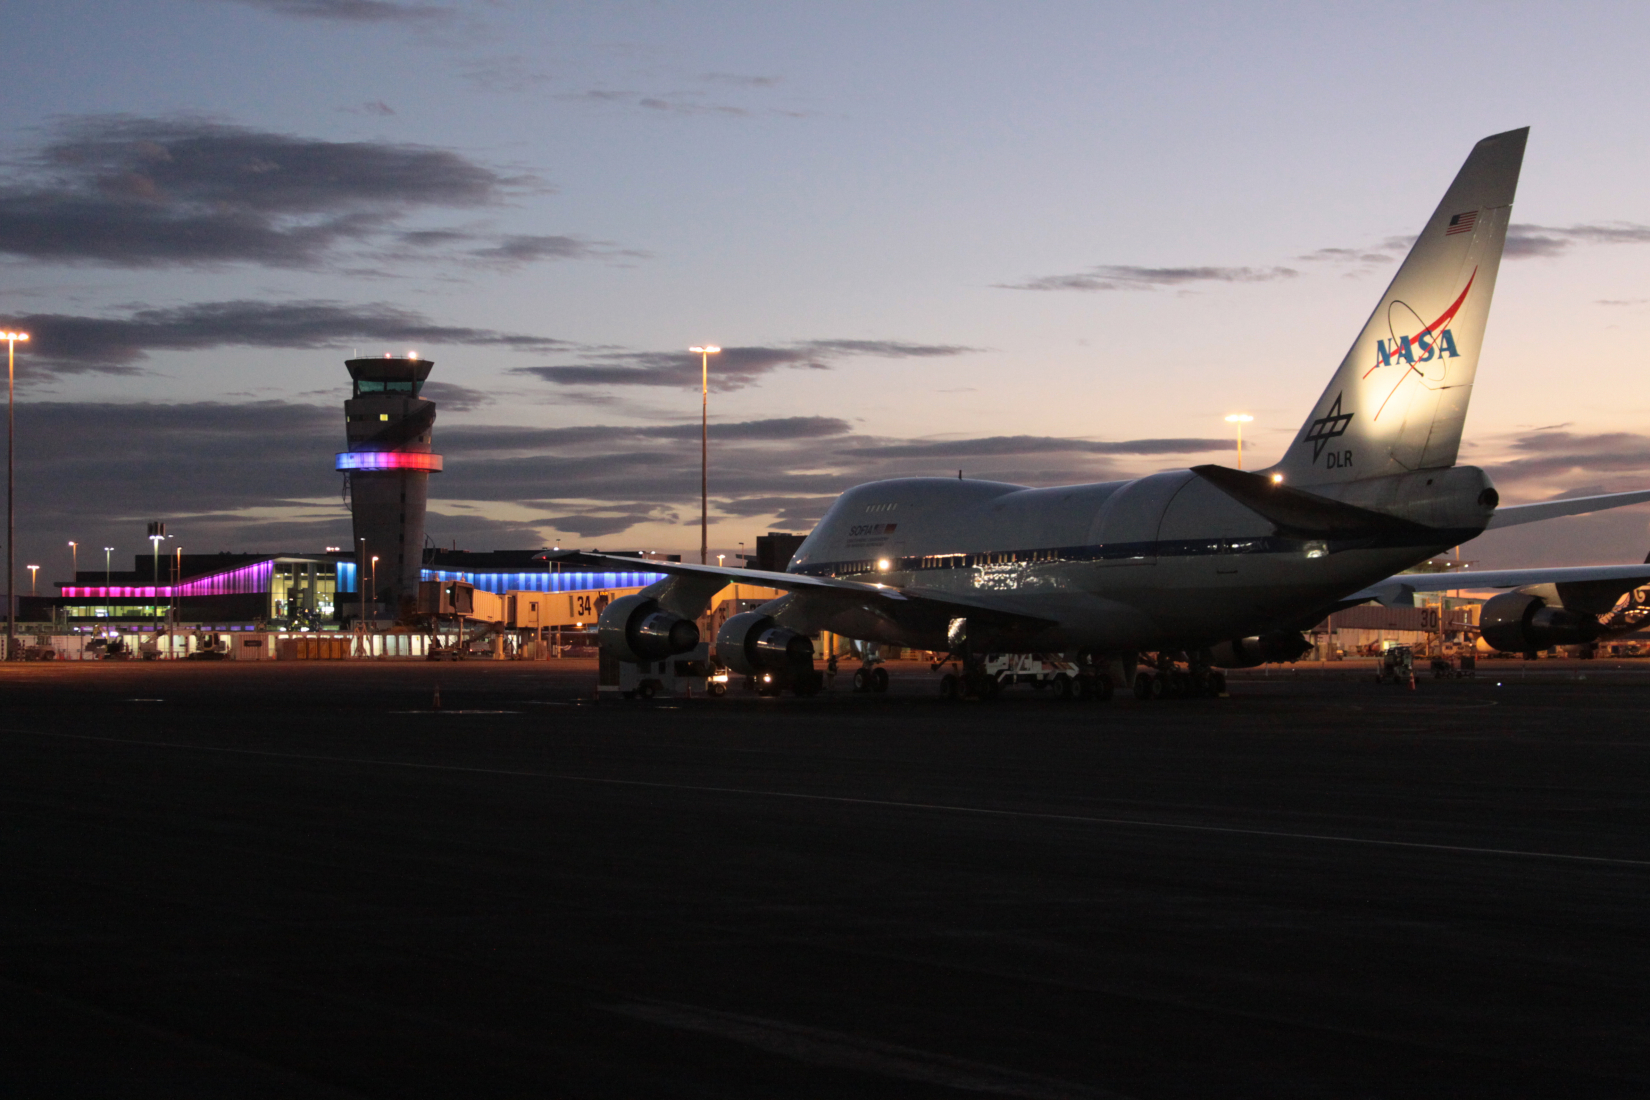 SOFIA on the National Science Foundation Antarctic Program Facility's ramp facing the Christchurch International Airport terminal and tower.